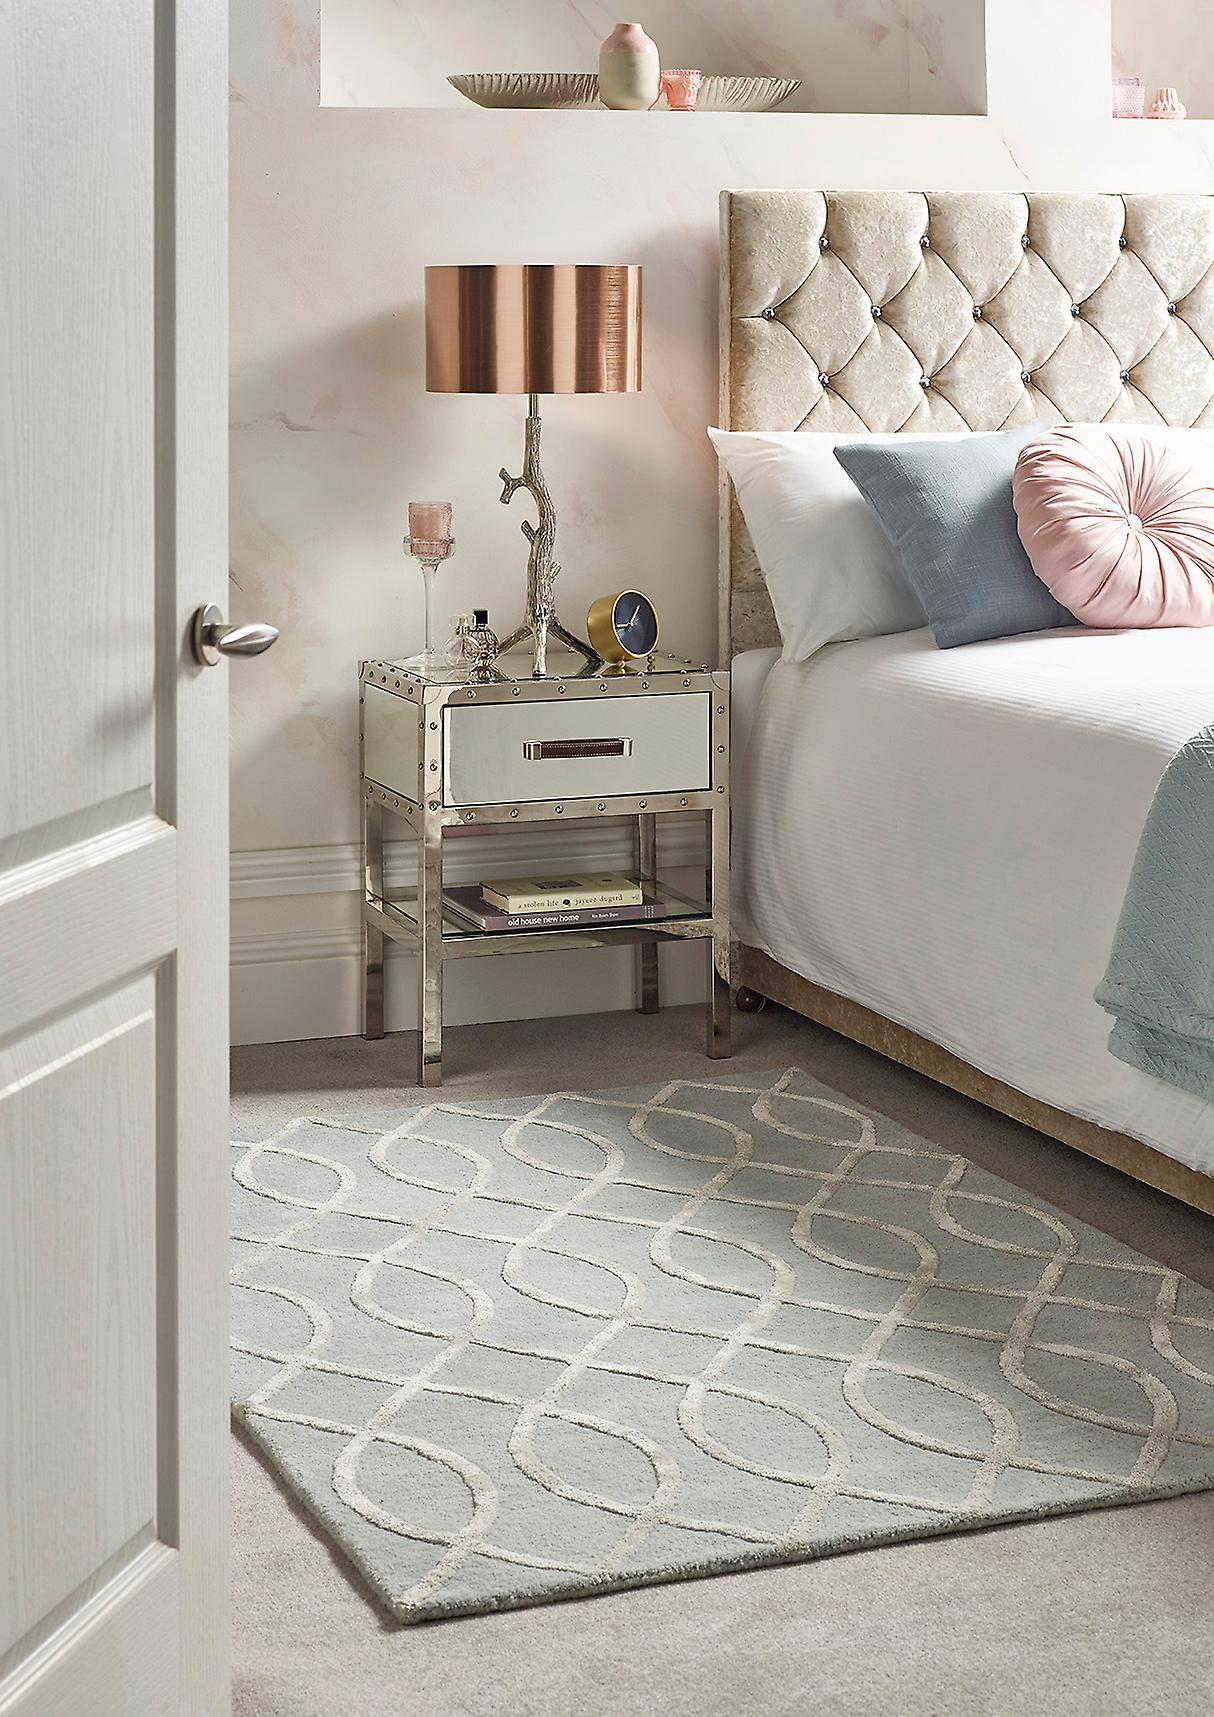 Hotel Glamour Hotel argent argent Rectangle Rugs Plain Nearly Plain Rugs